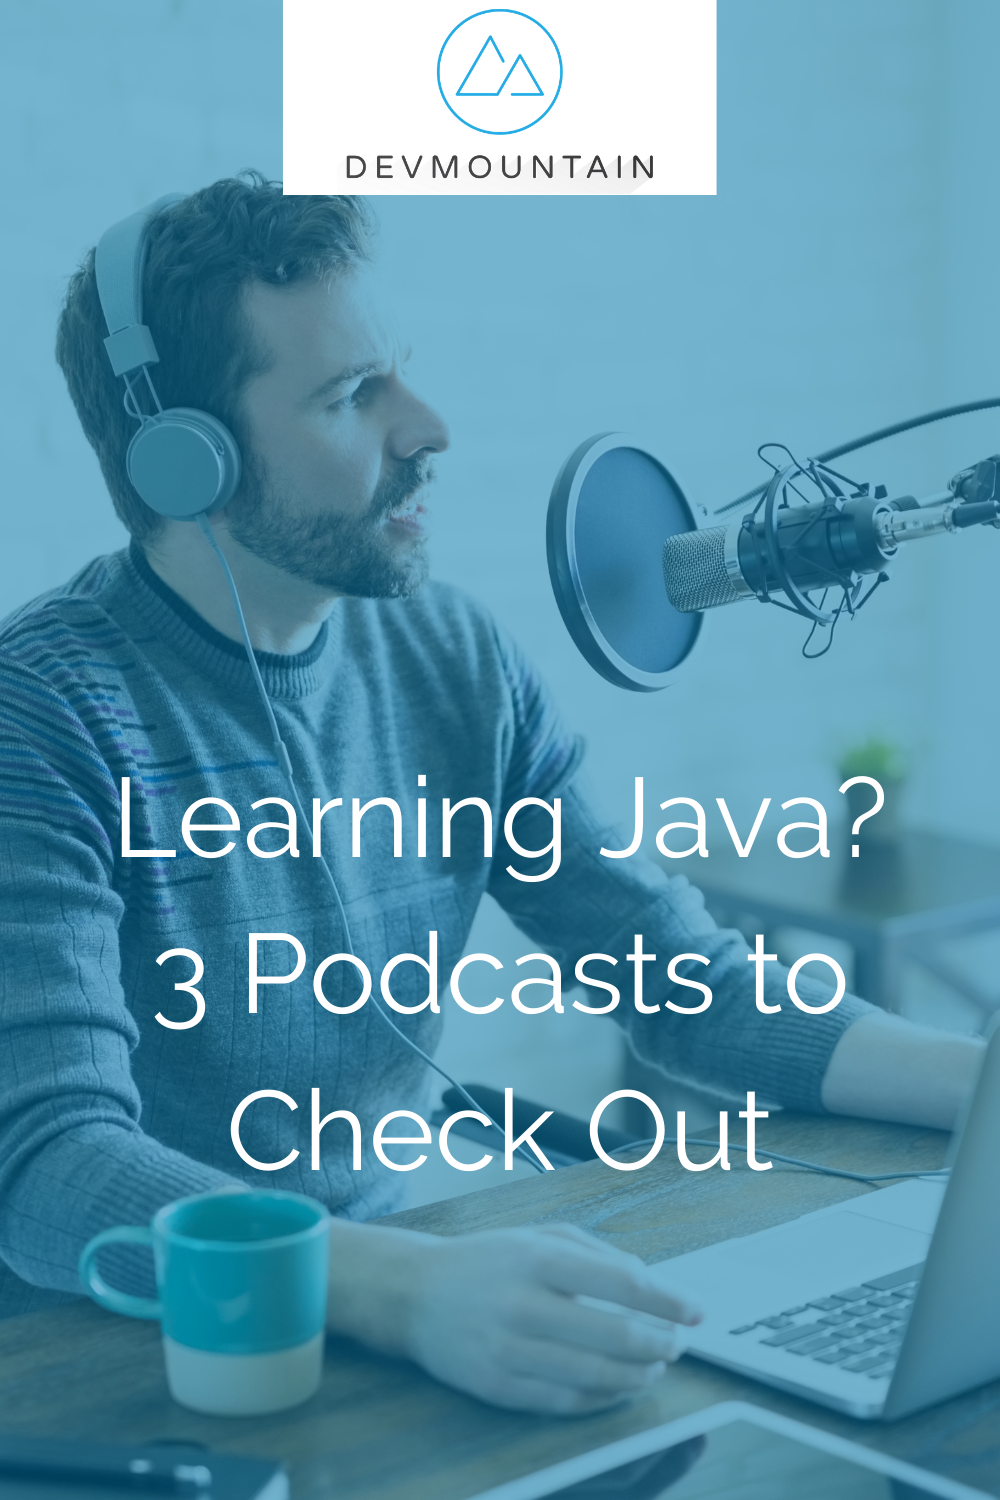 Learning Java? 3 Podcasts to Check Out